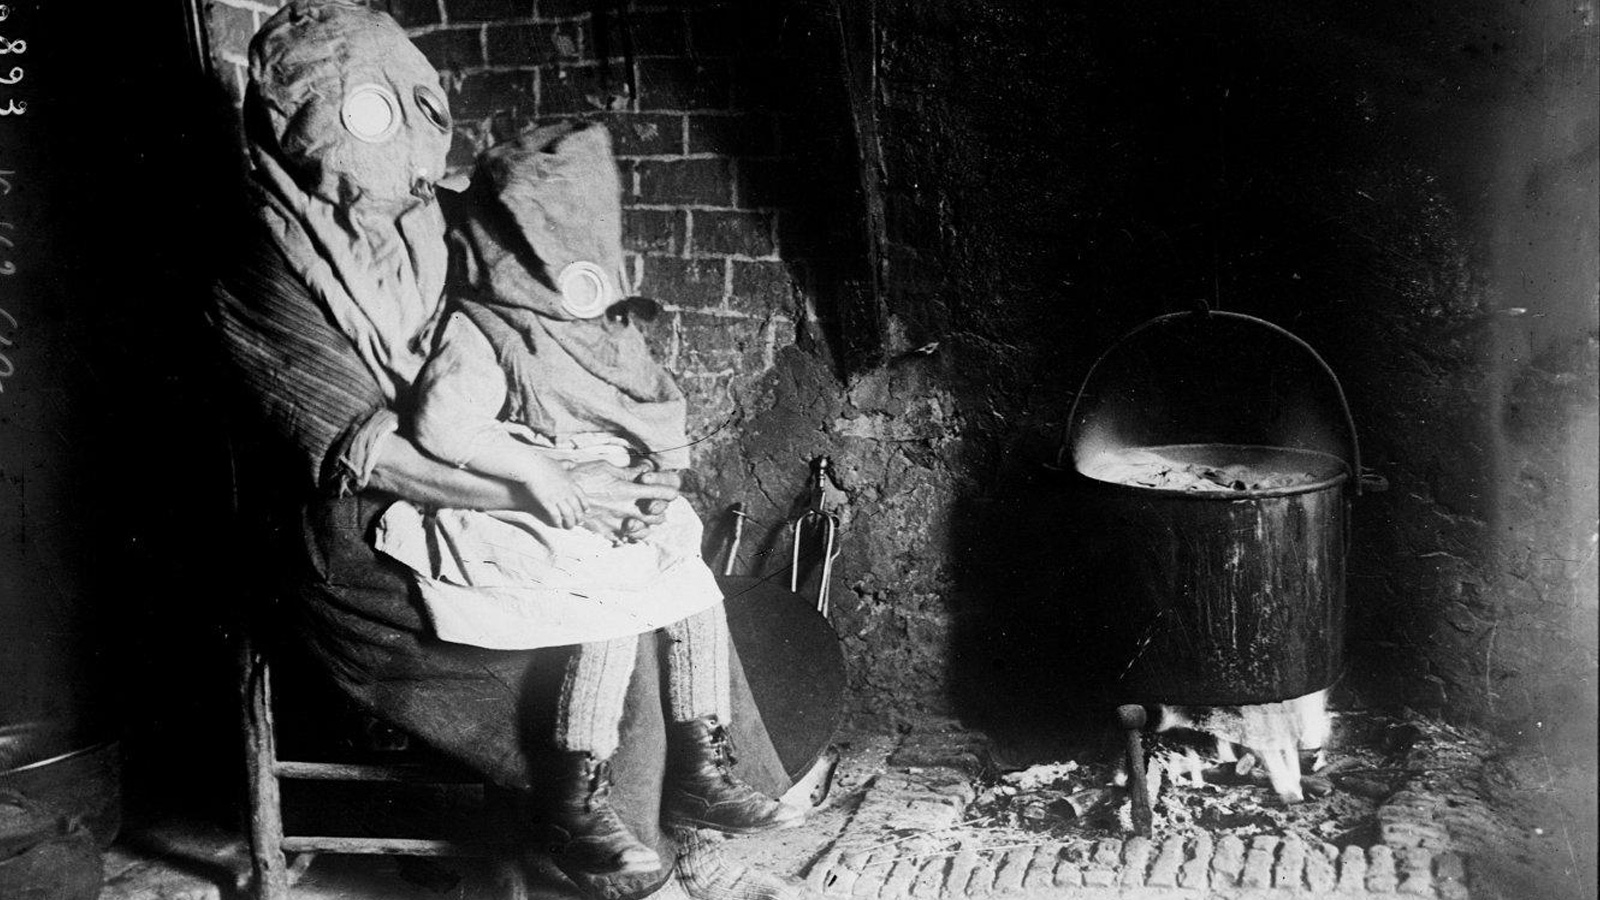 Banner for civilian article. A photograph shows a mother holding her small child in their home. They are both wearing gas masks. To their right is a pot on an open fire.